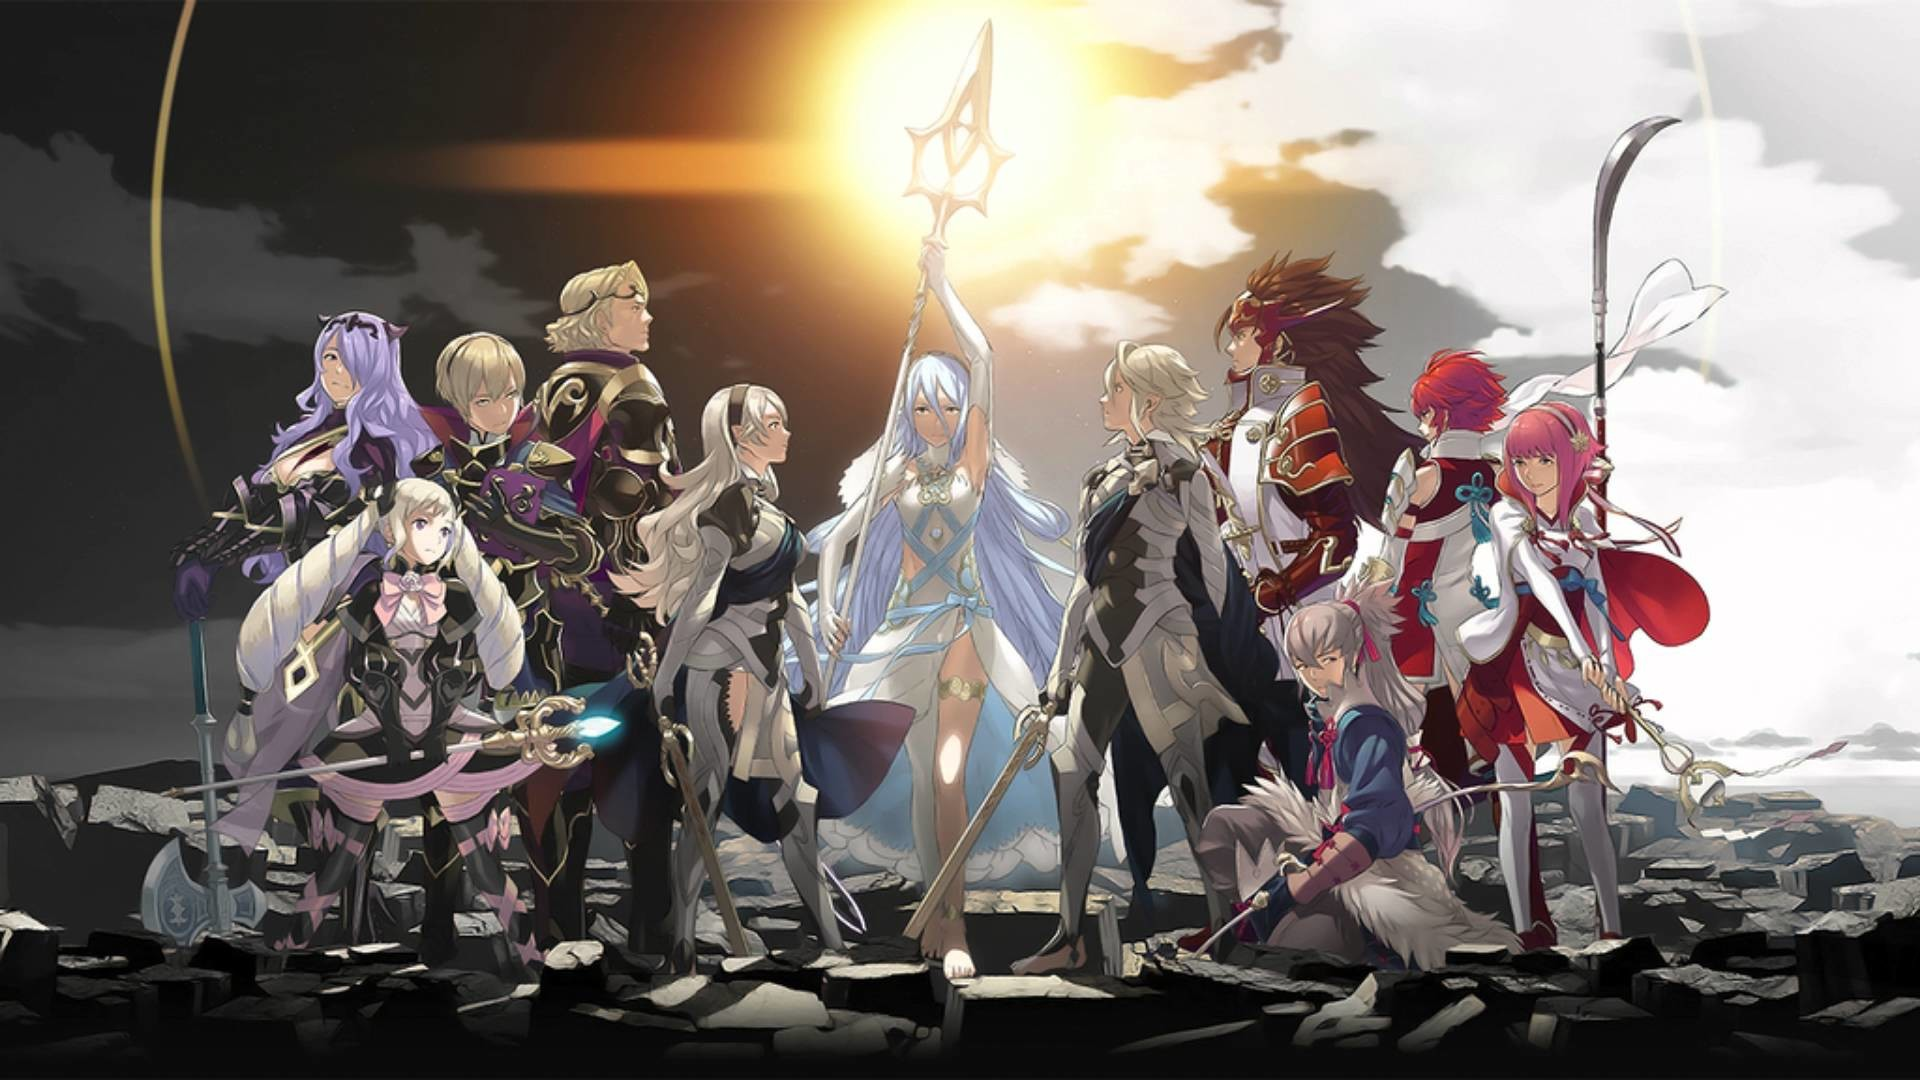 Fire Emblem: Fates – End of All (Sky, Land, and Below rotation) – YouTube